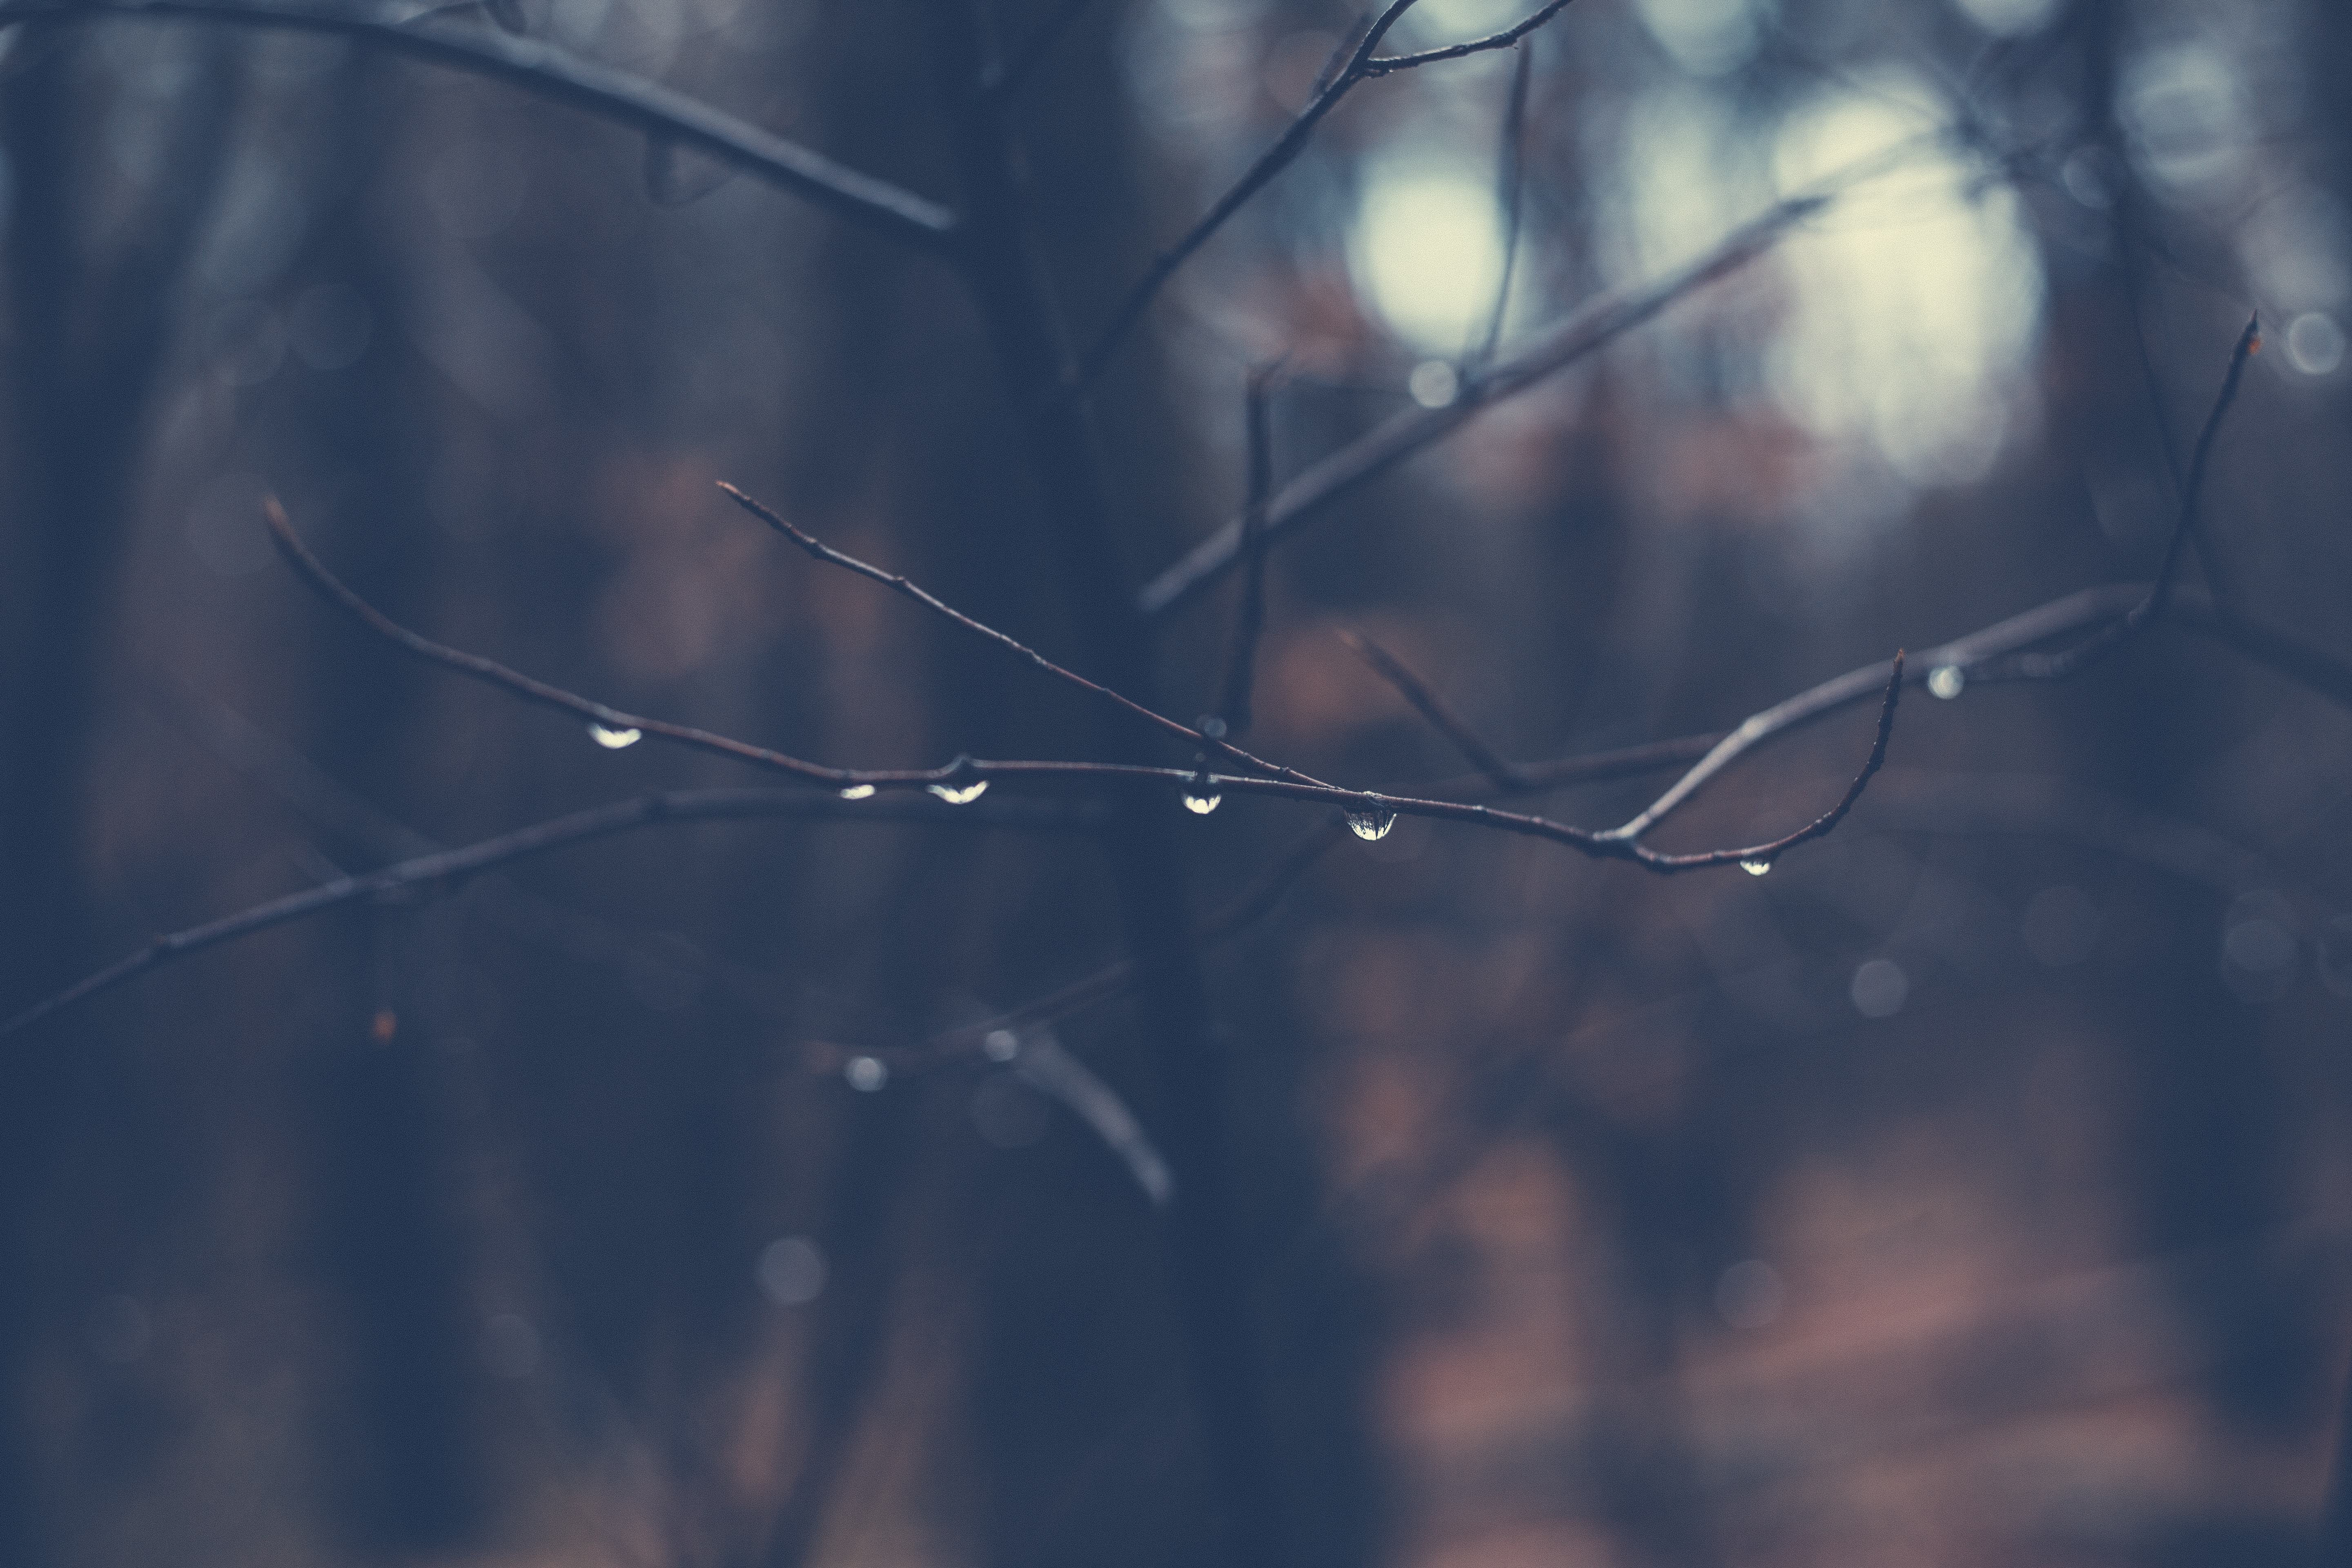 shallow focus photography of tree branch with morning dew